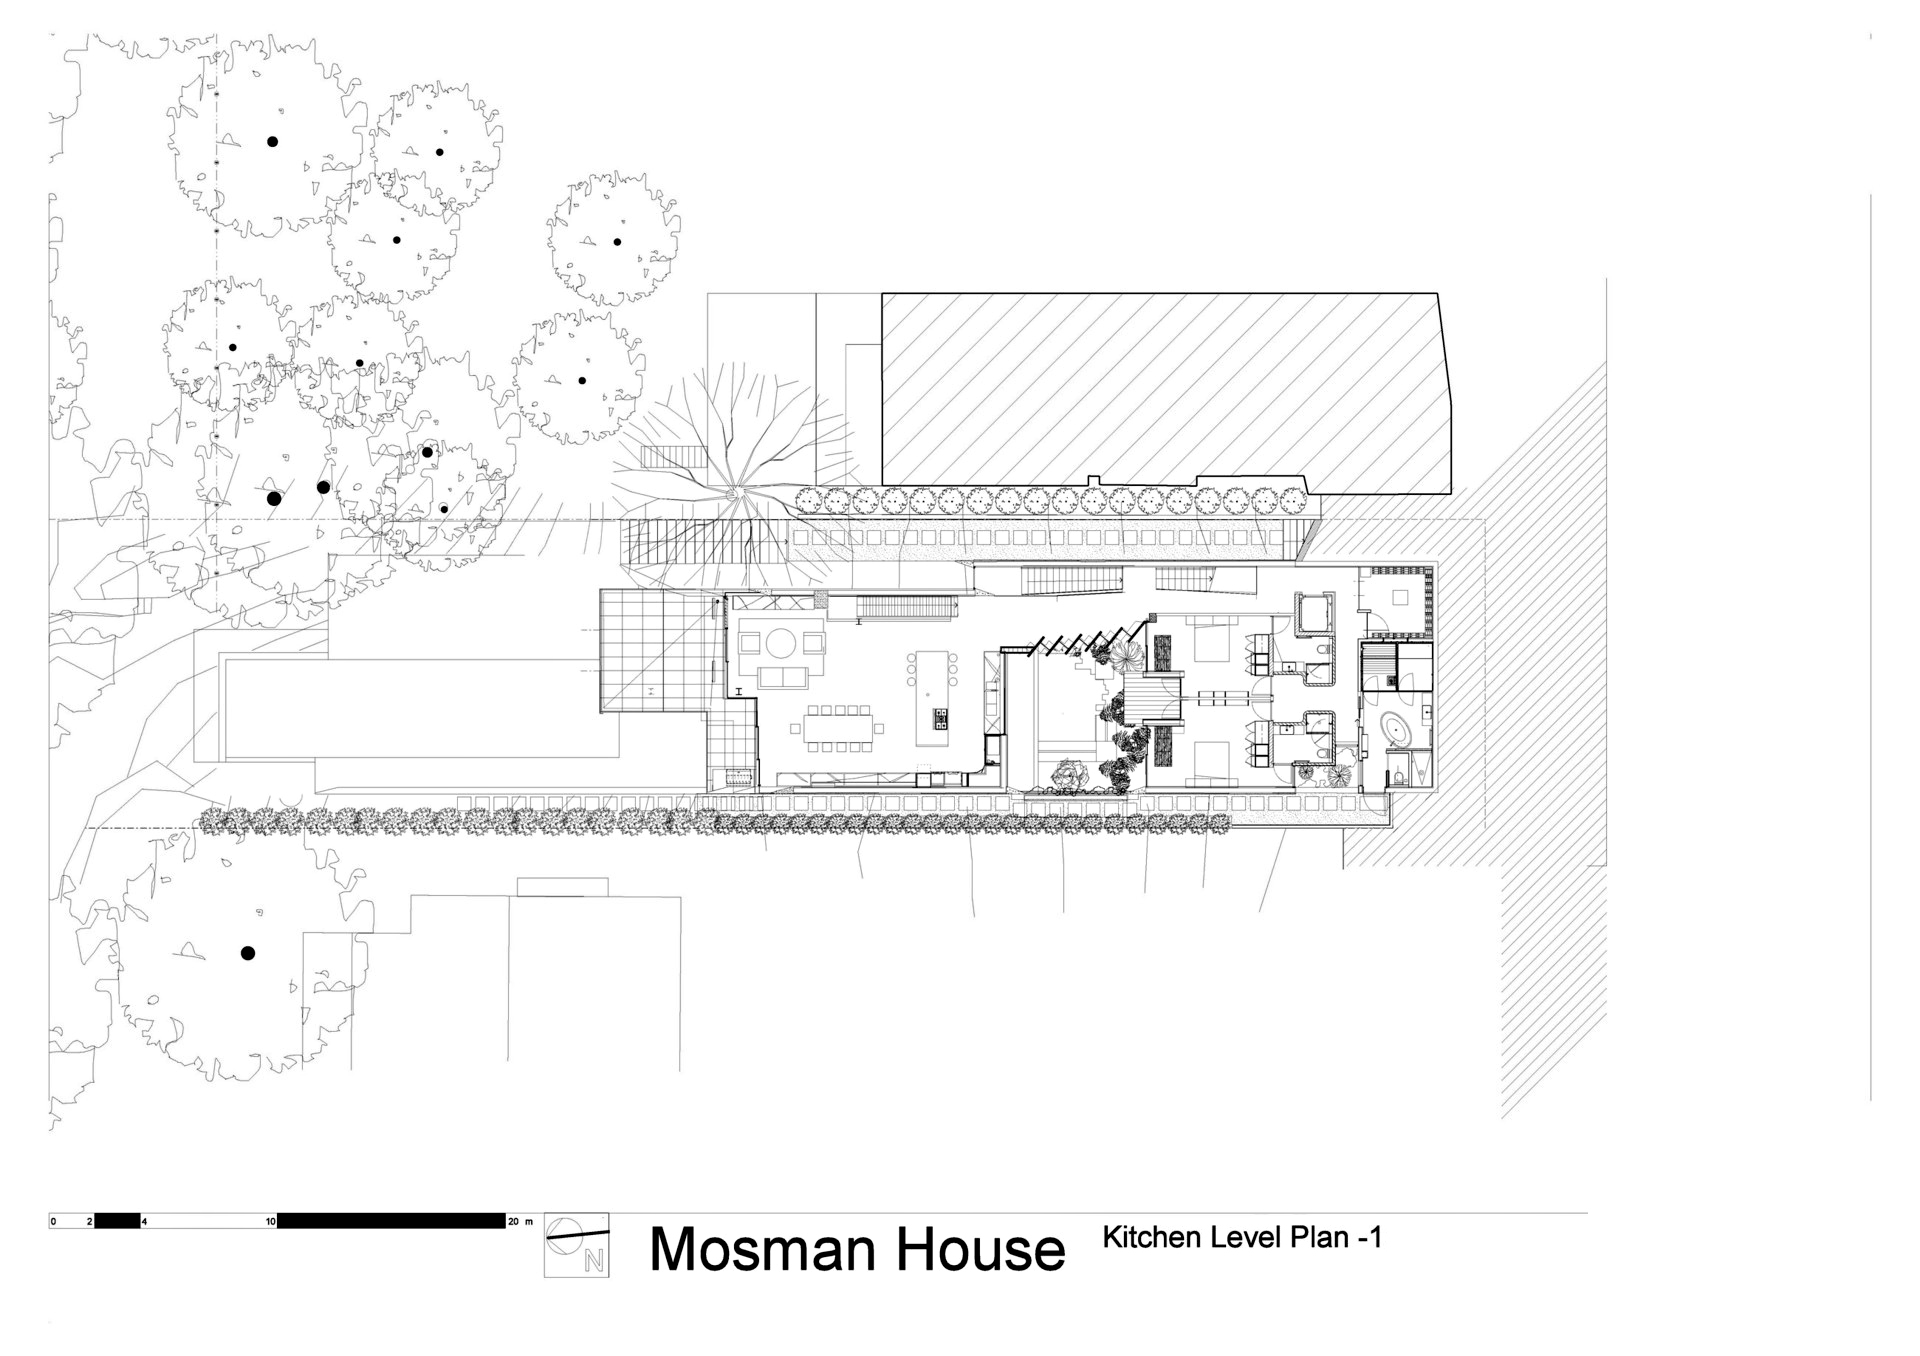 Kitchen Level Floor Plan - Mosman House Residence - Sydney, New South Wales, Australia